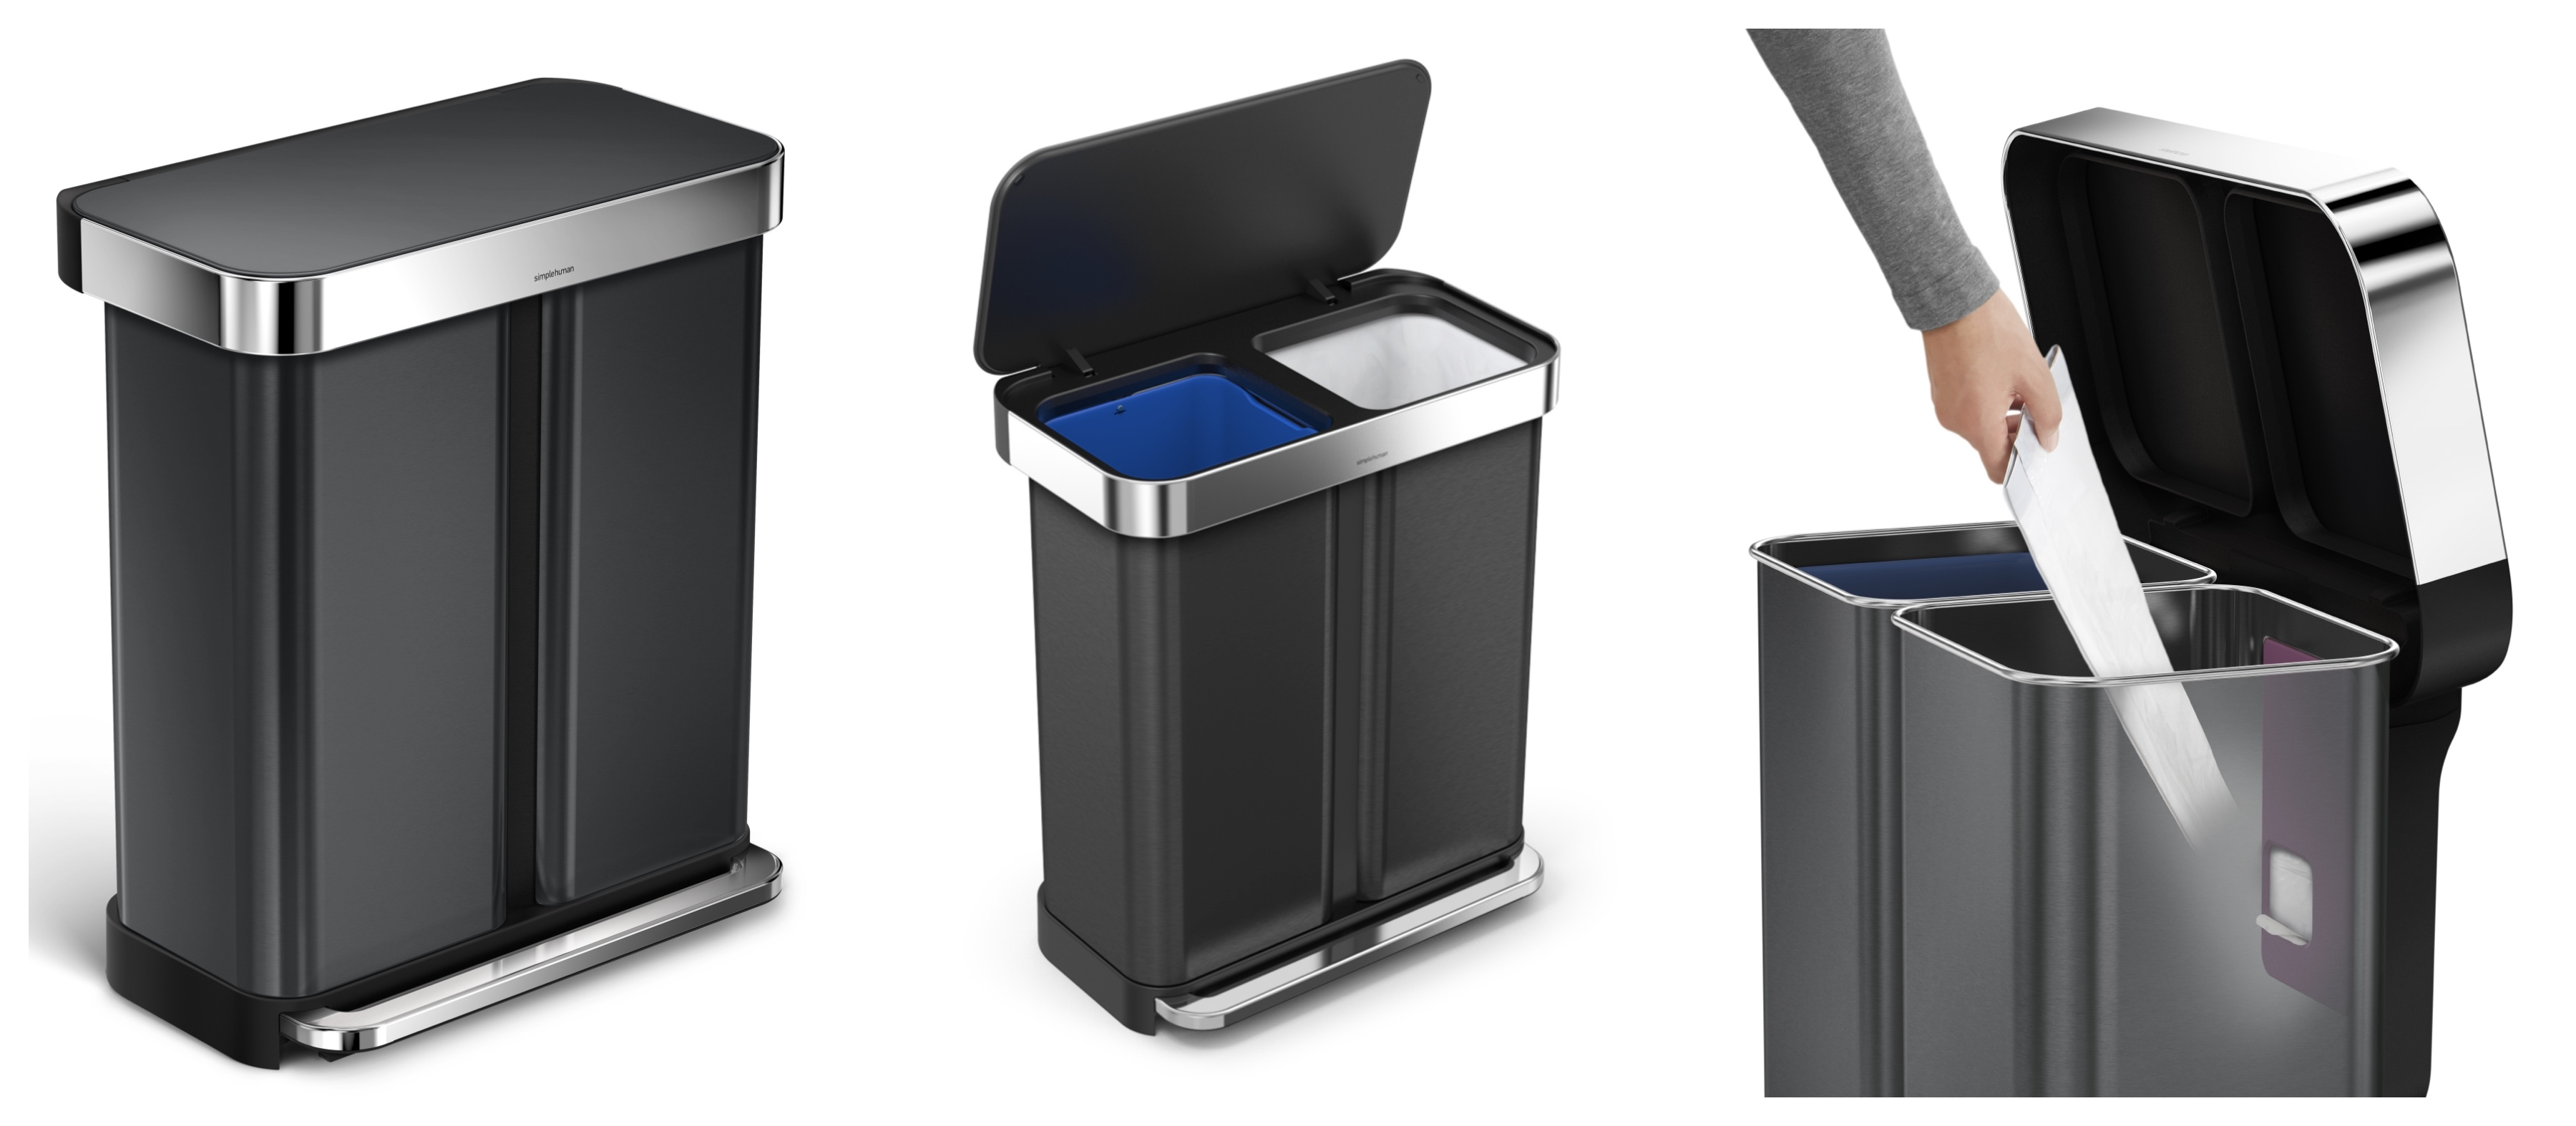 New sleek black steel Simplehuman recycling bin